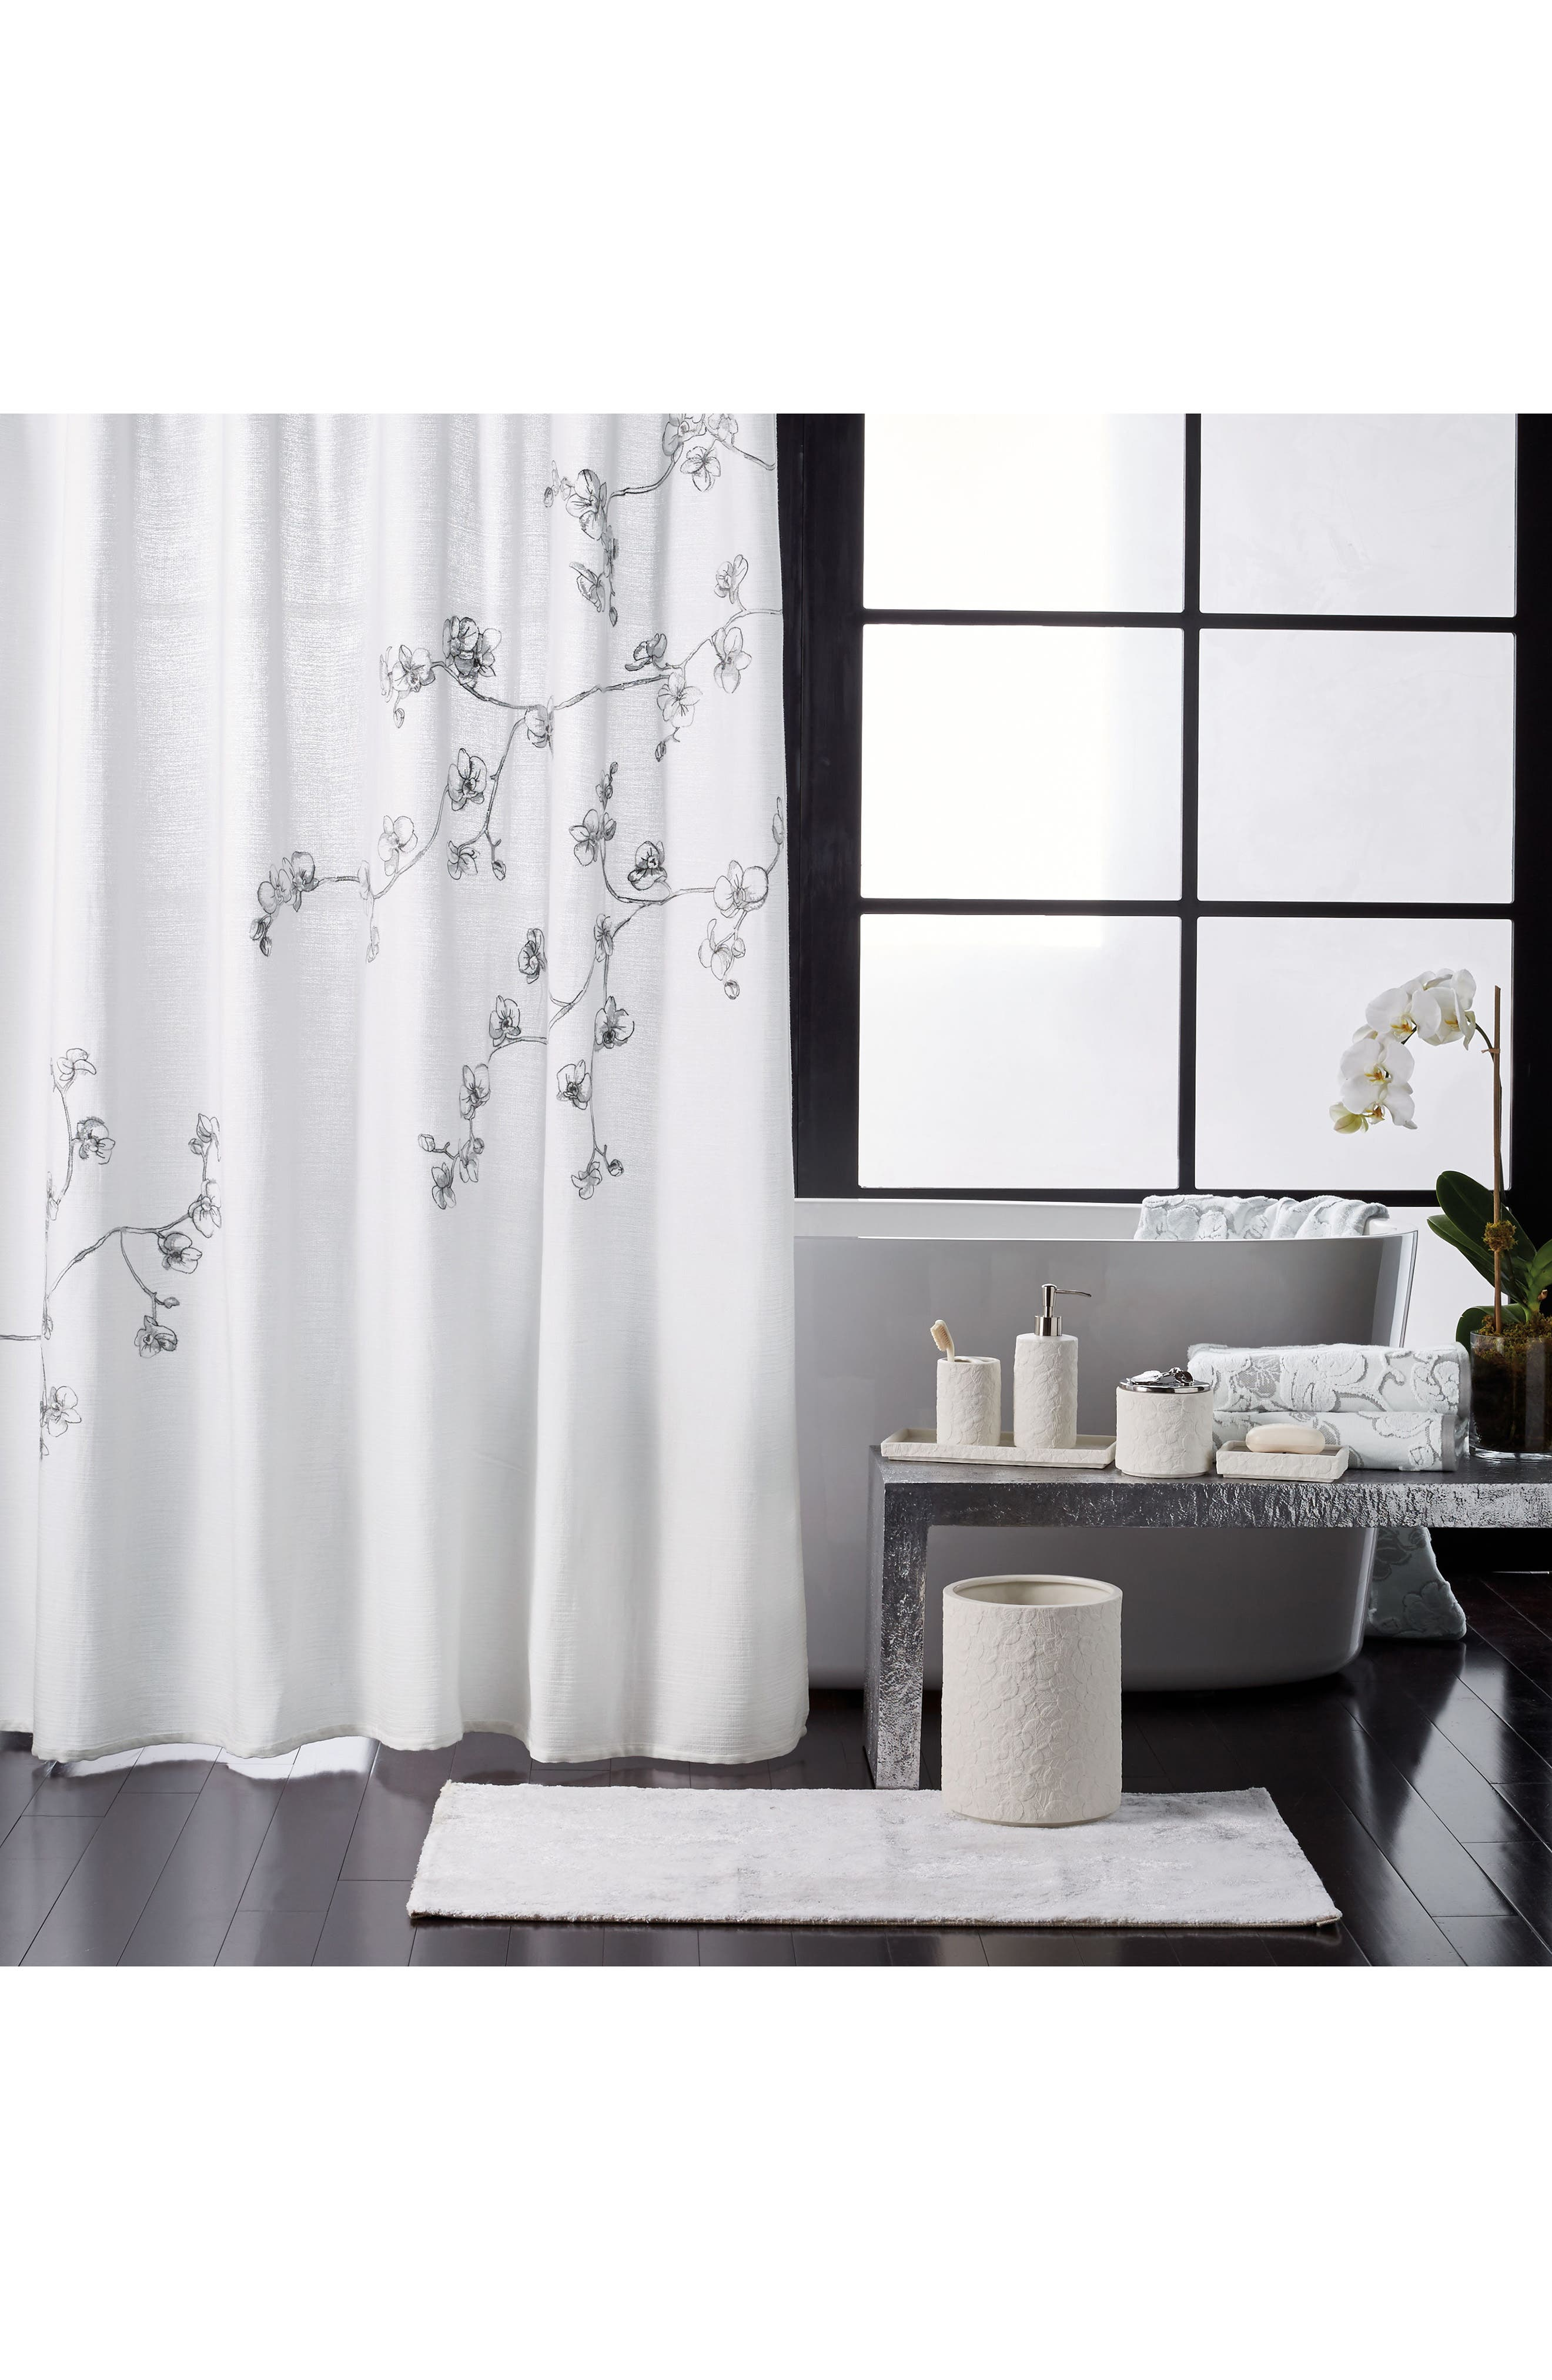 Michael Aram Orchid Shower Curtain